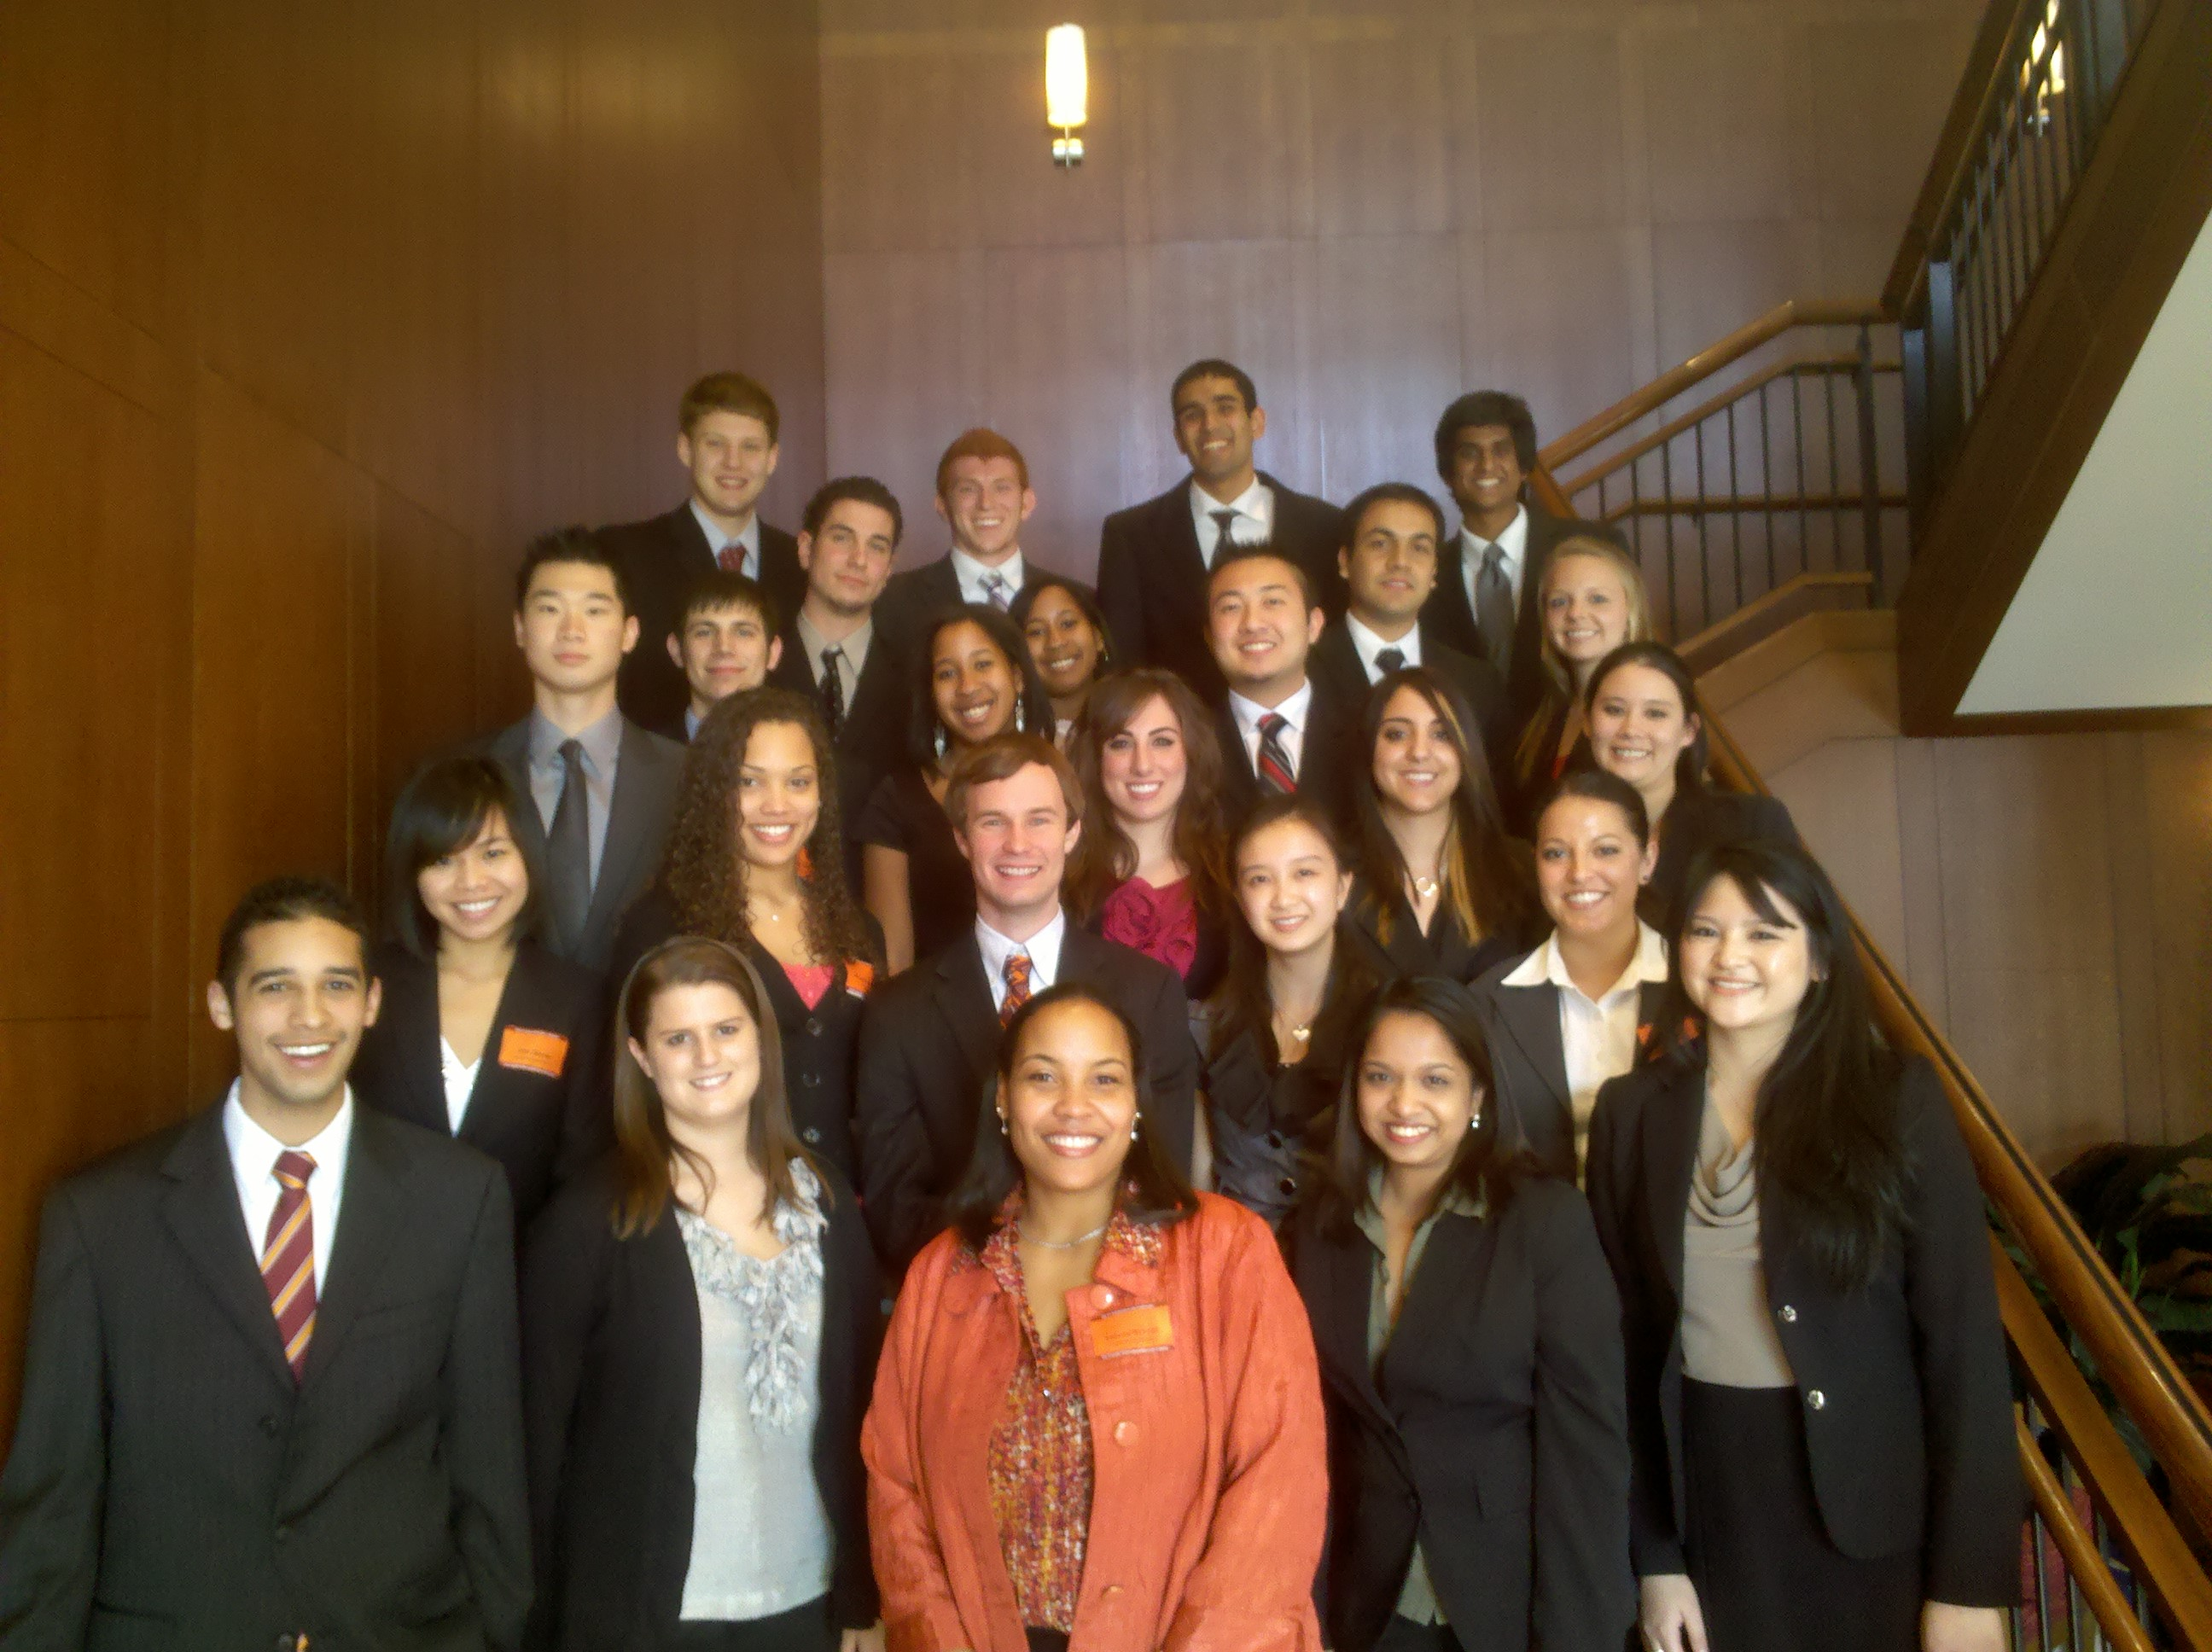 Yalana Orr (front row, third from left) with student members of the Pamplin Multicultural Diversity Council